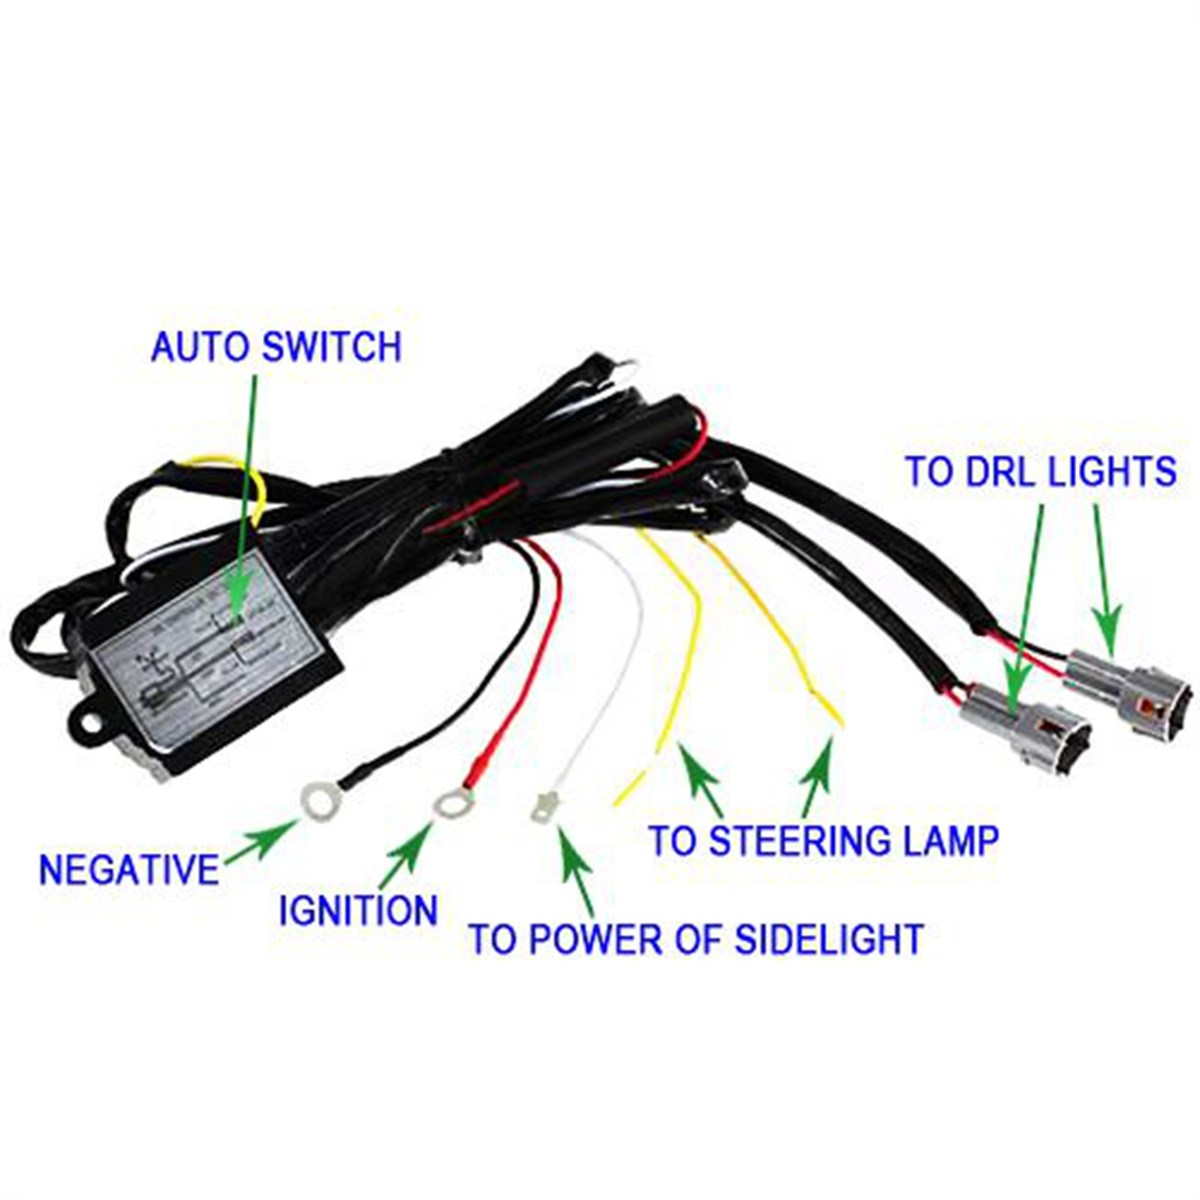 Automotive Ignition Switches Wiring Harnesses And Controllers Help With Welder Mustang Forums At Stangnet Drl Led Daytime Running Light Relay Harness Automatic On Off Control Rh Aliexpress Com